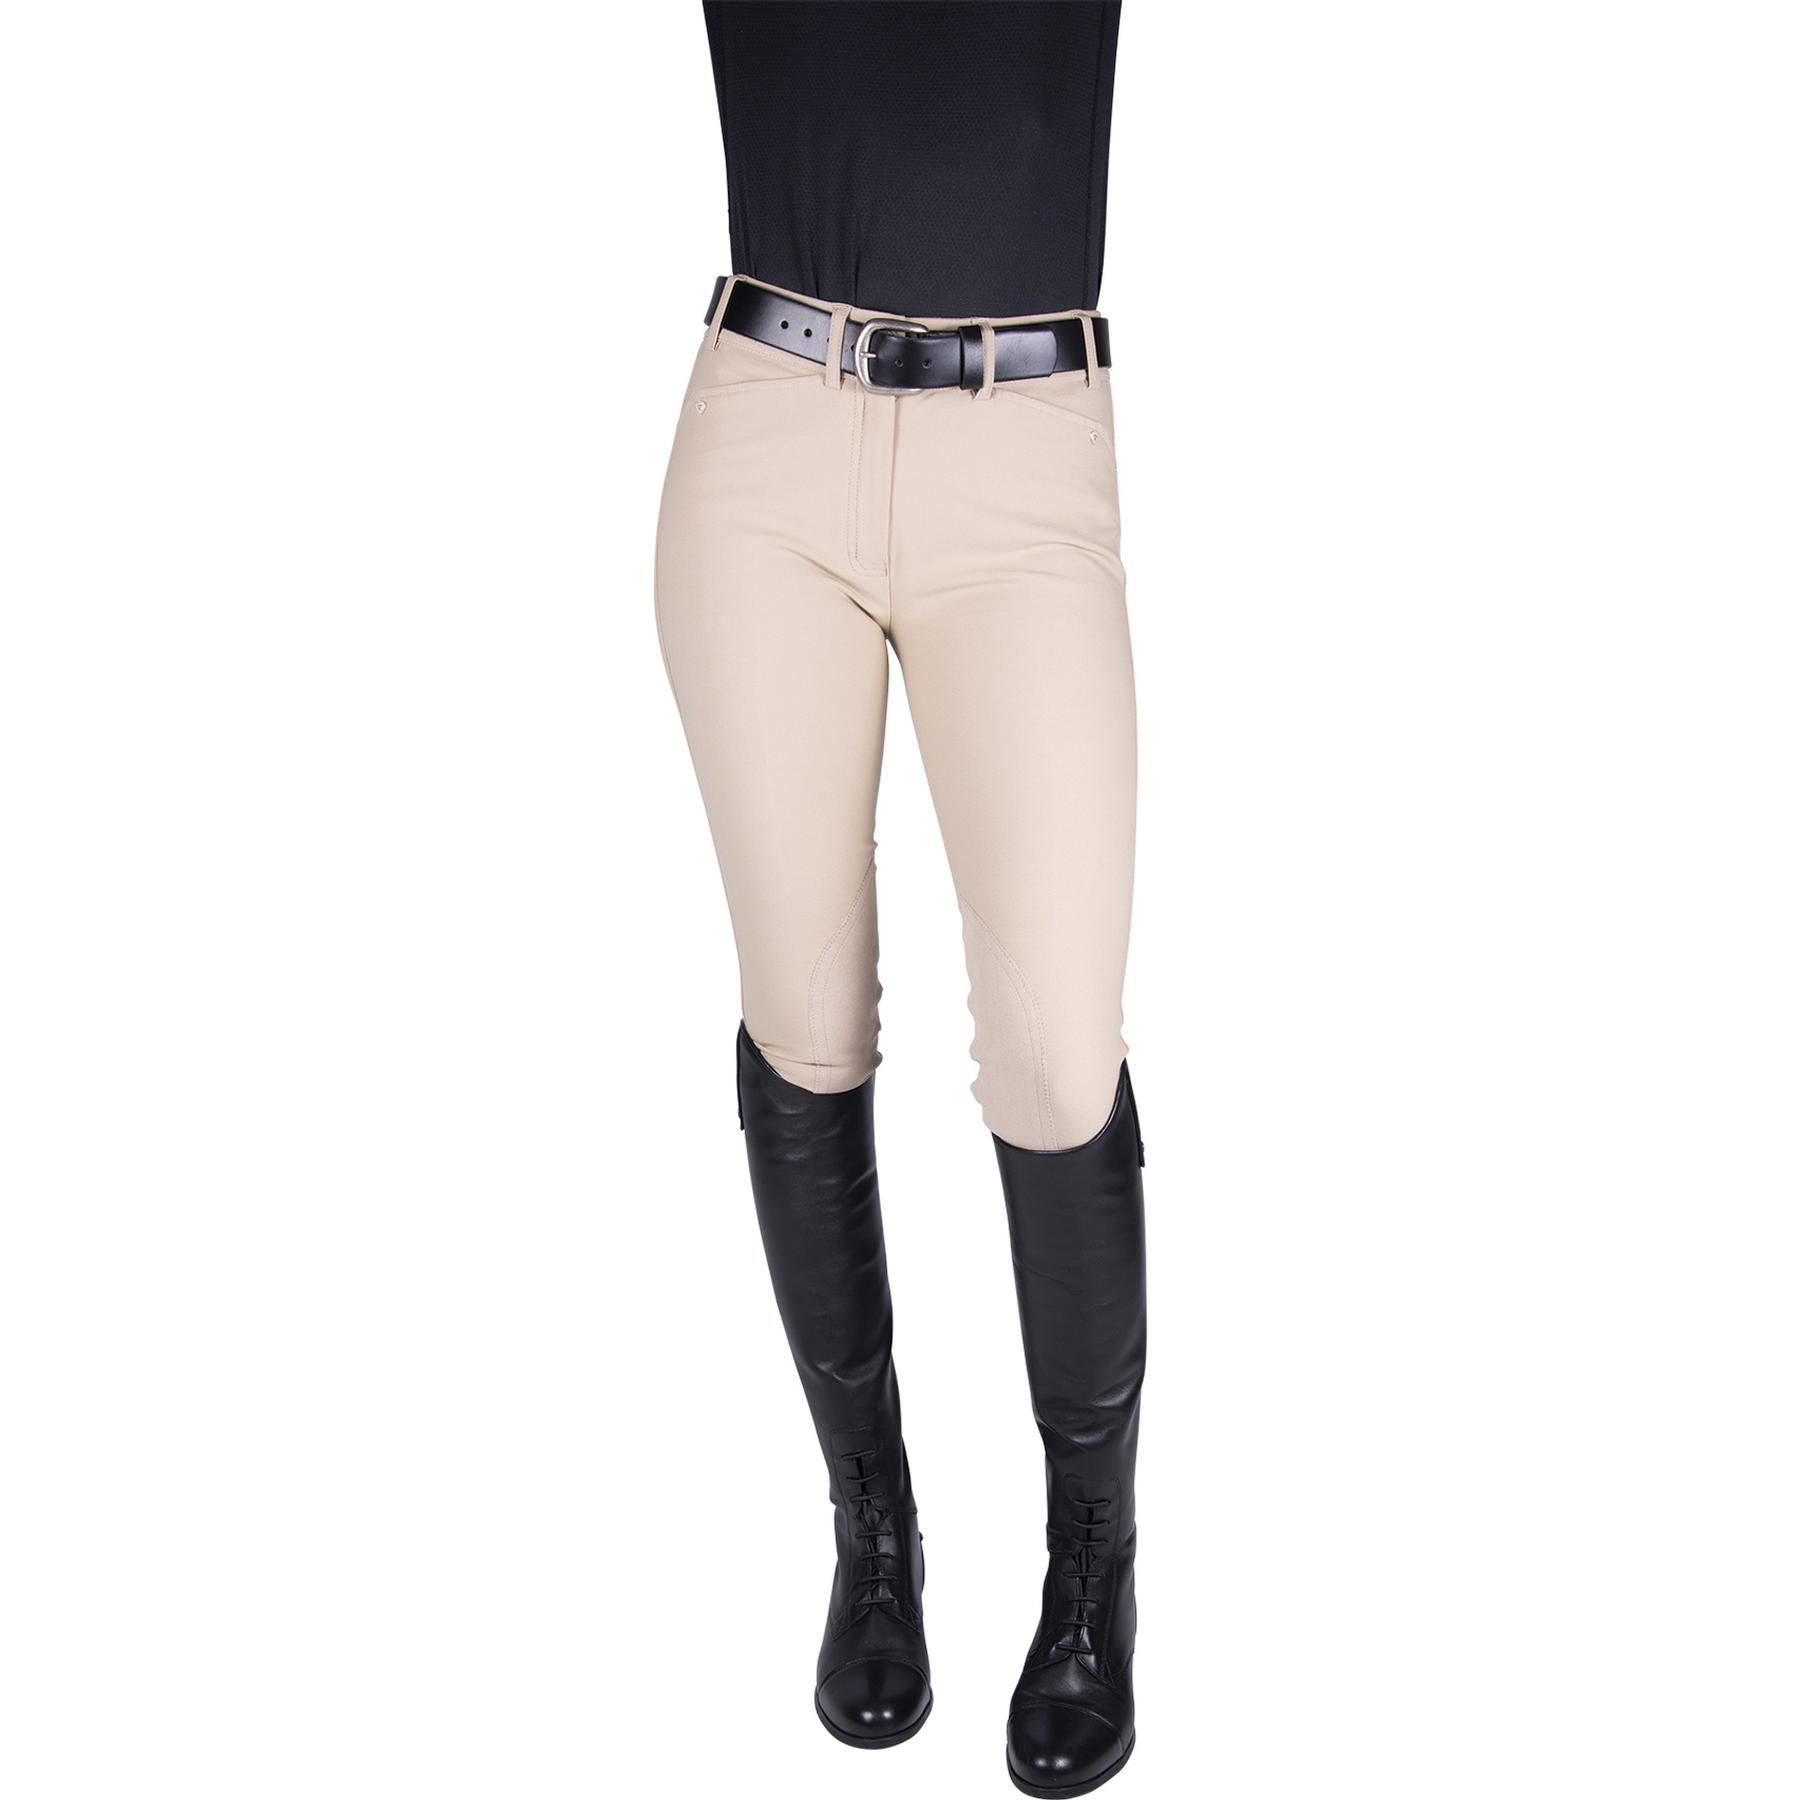 Ariat Heritage Elite Low Rise Knee Patch Womens Riding Breeches 14FcnWwDsG